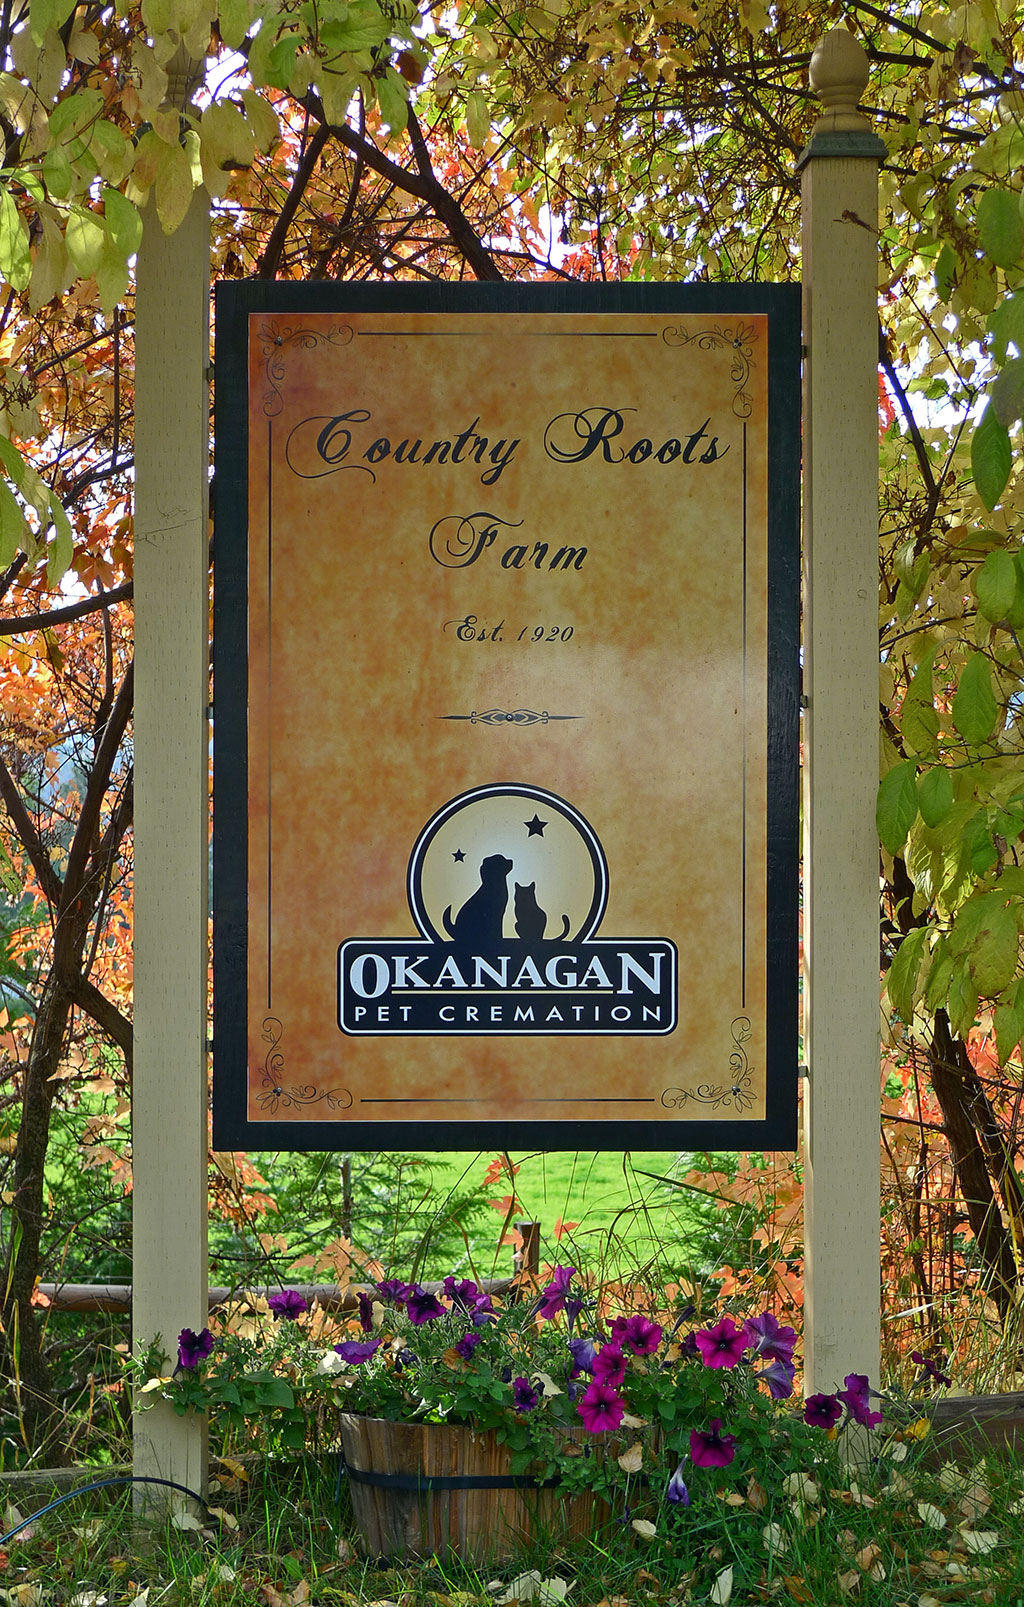 Okanagan Pet Cremation Road Sign